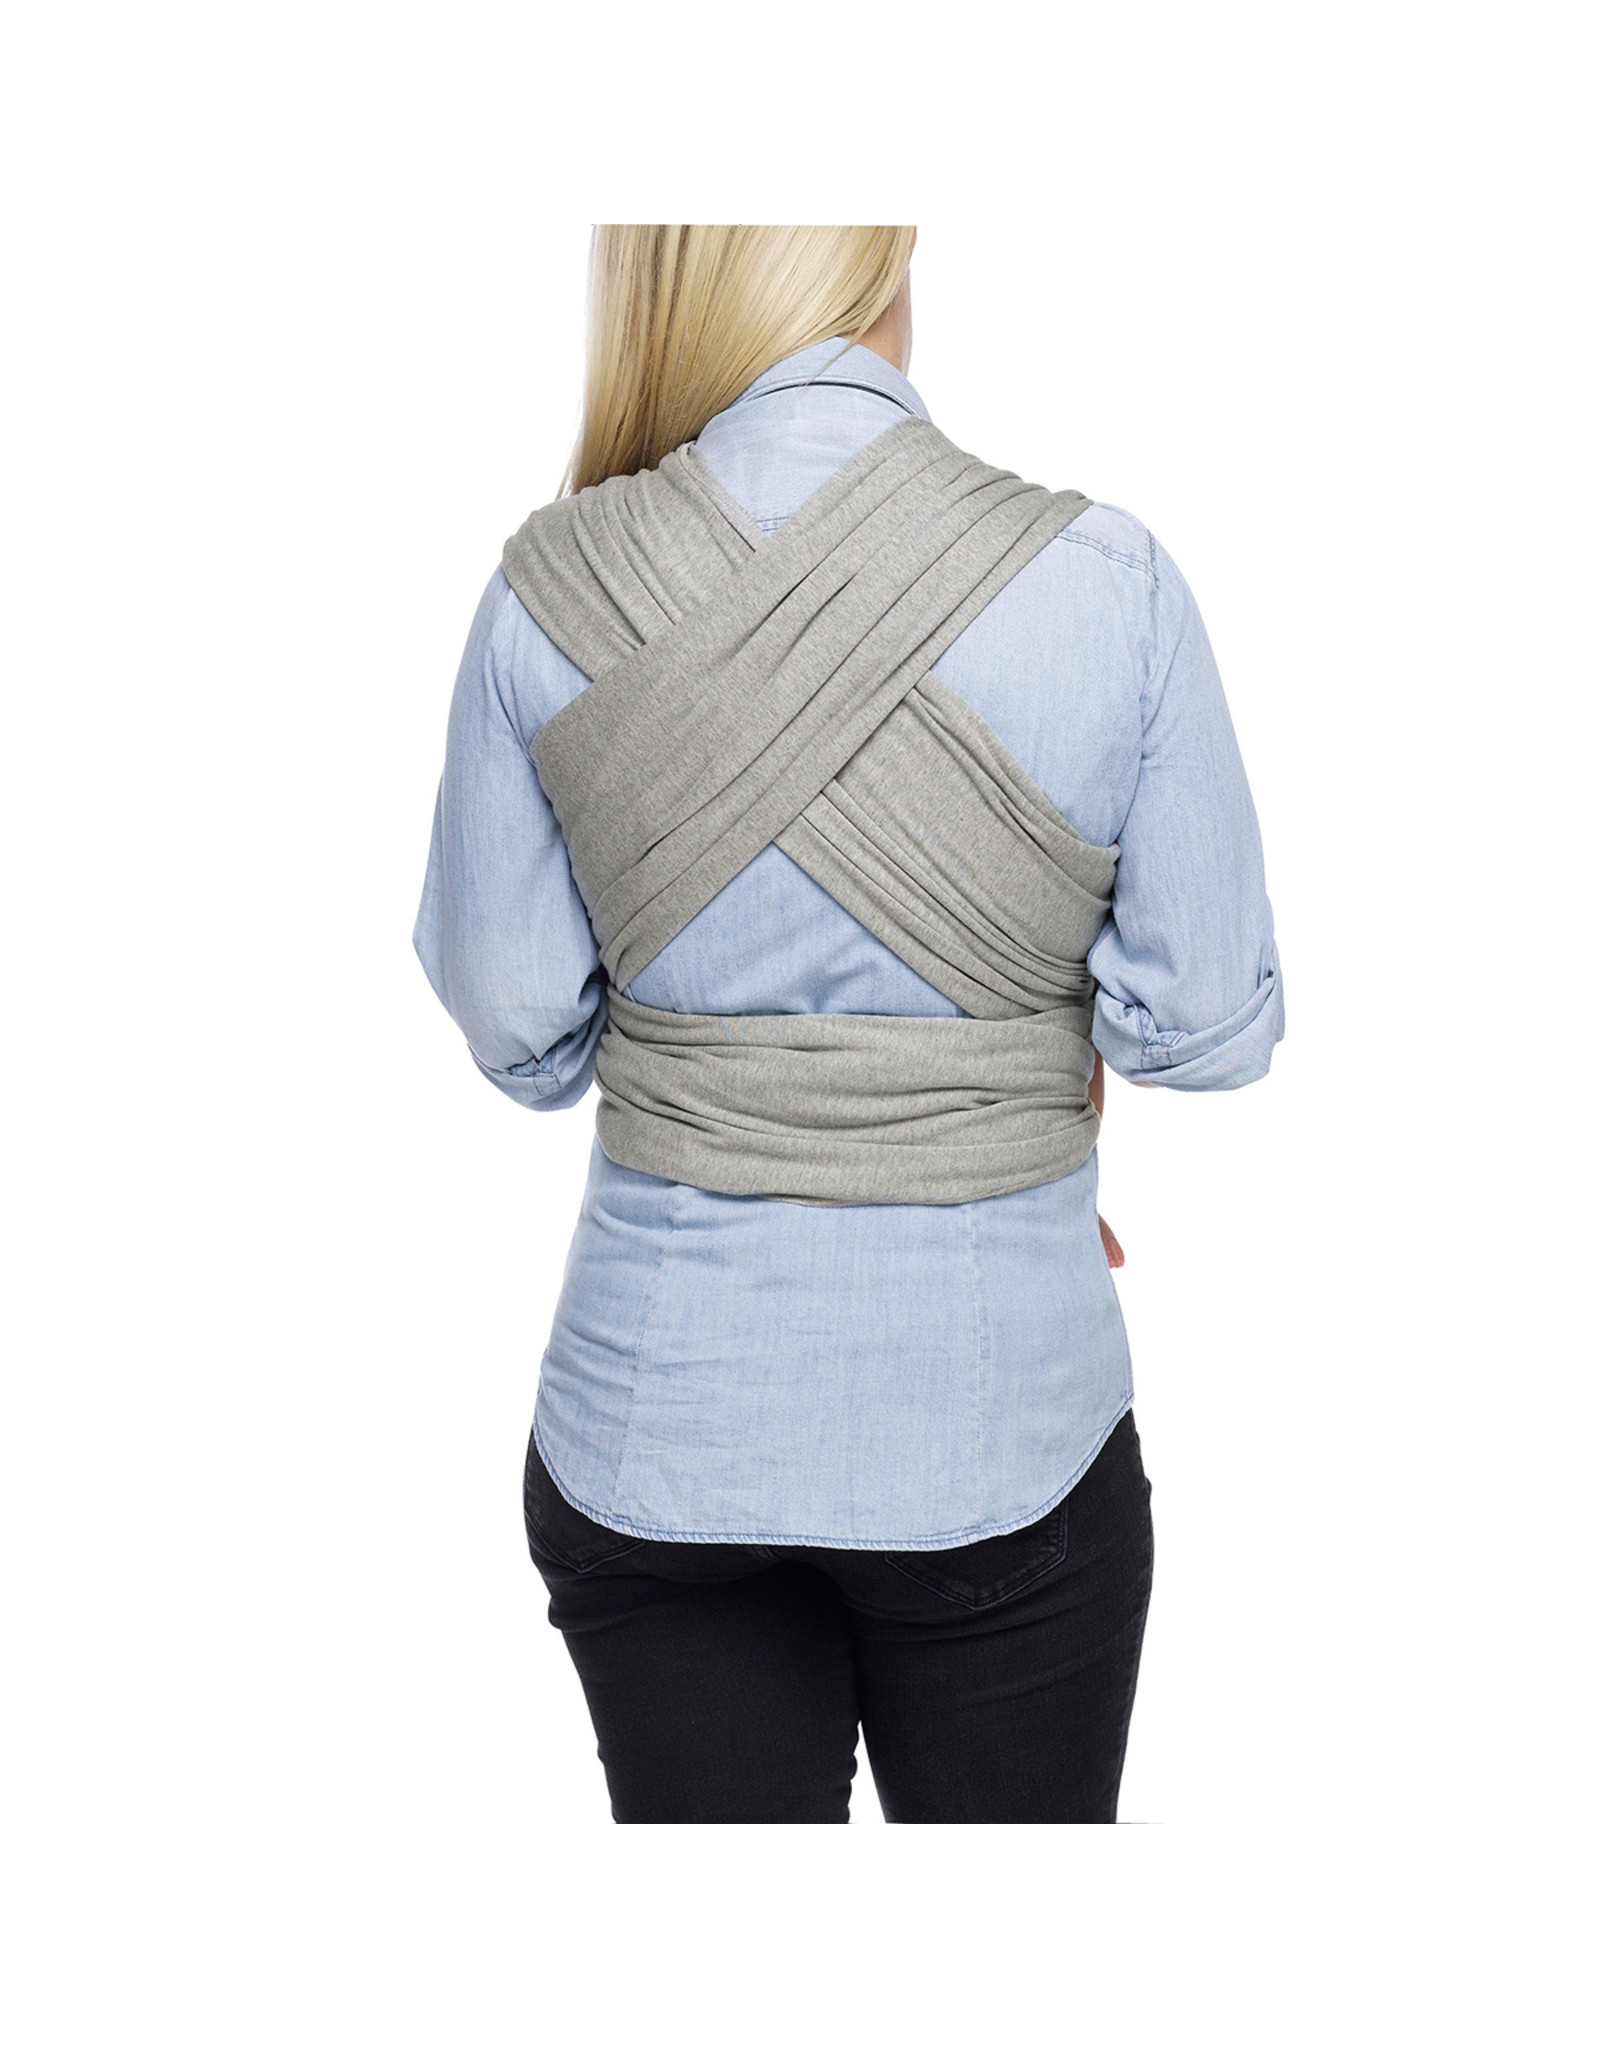 Moby Moby Wrap Tragetuch Classic Gray